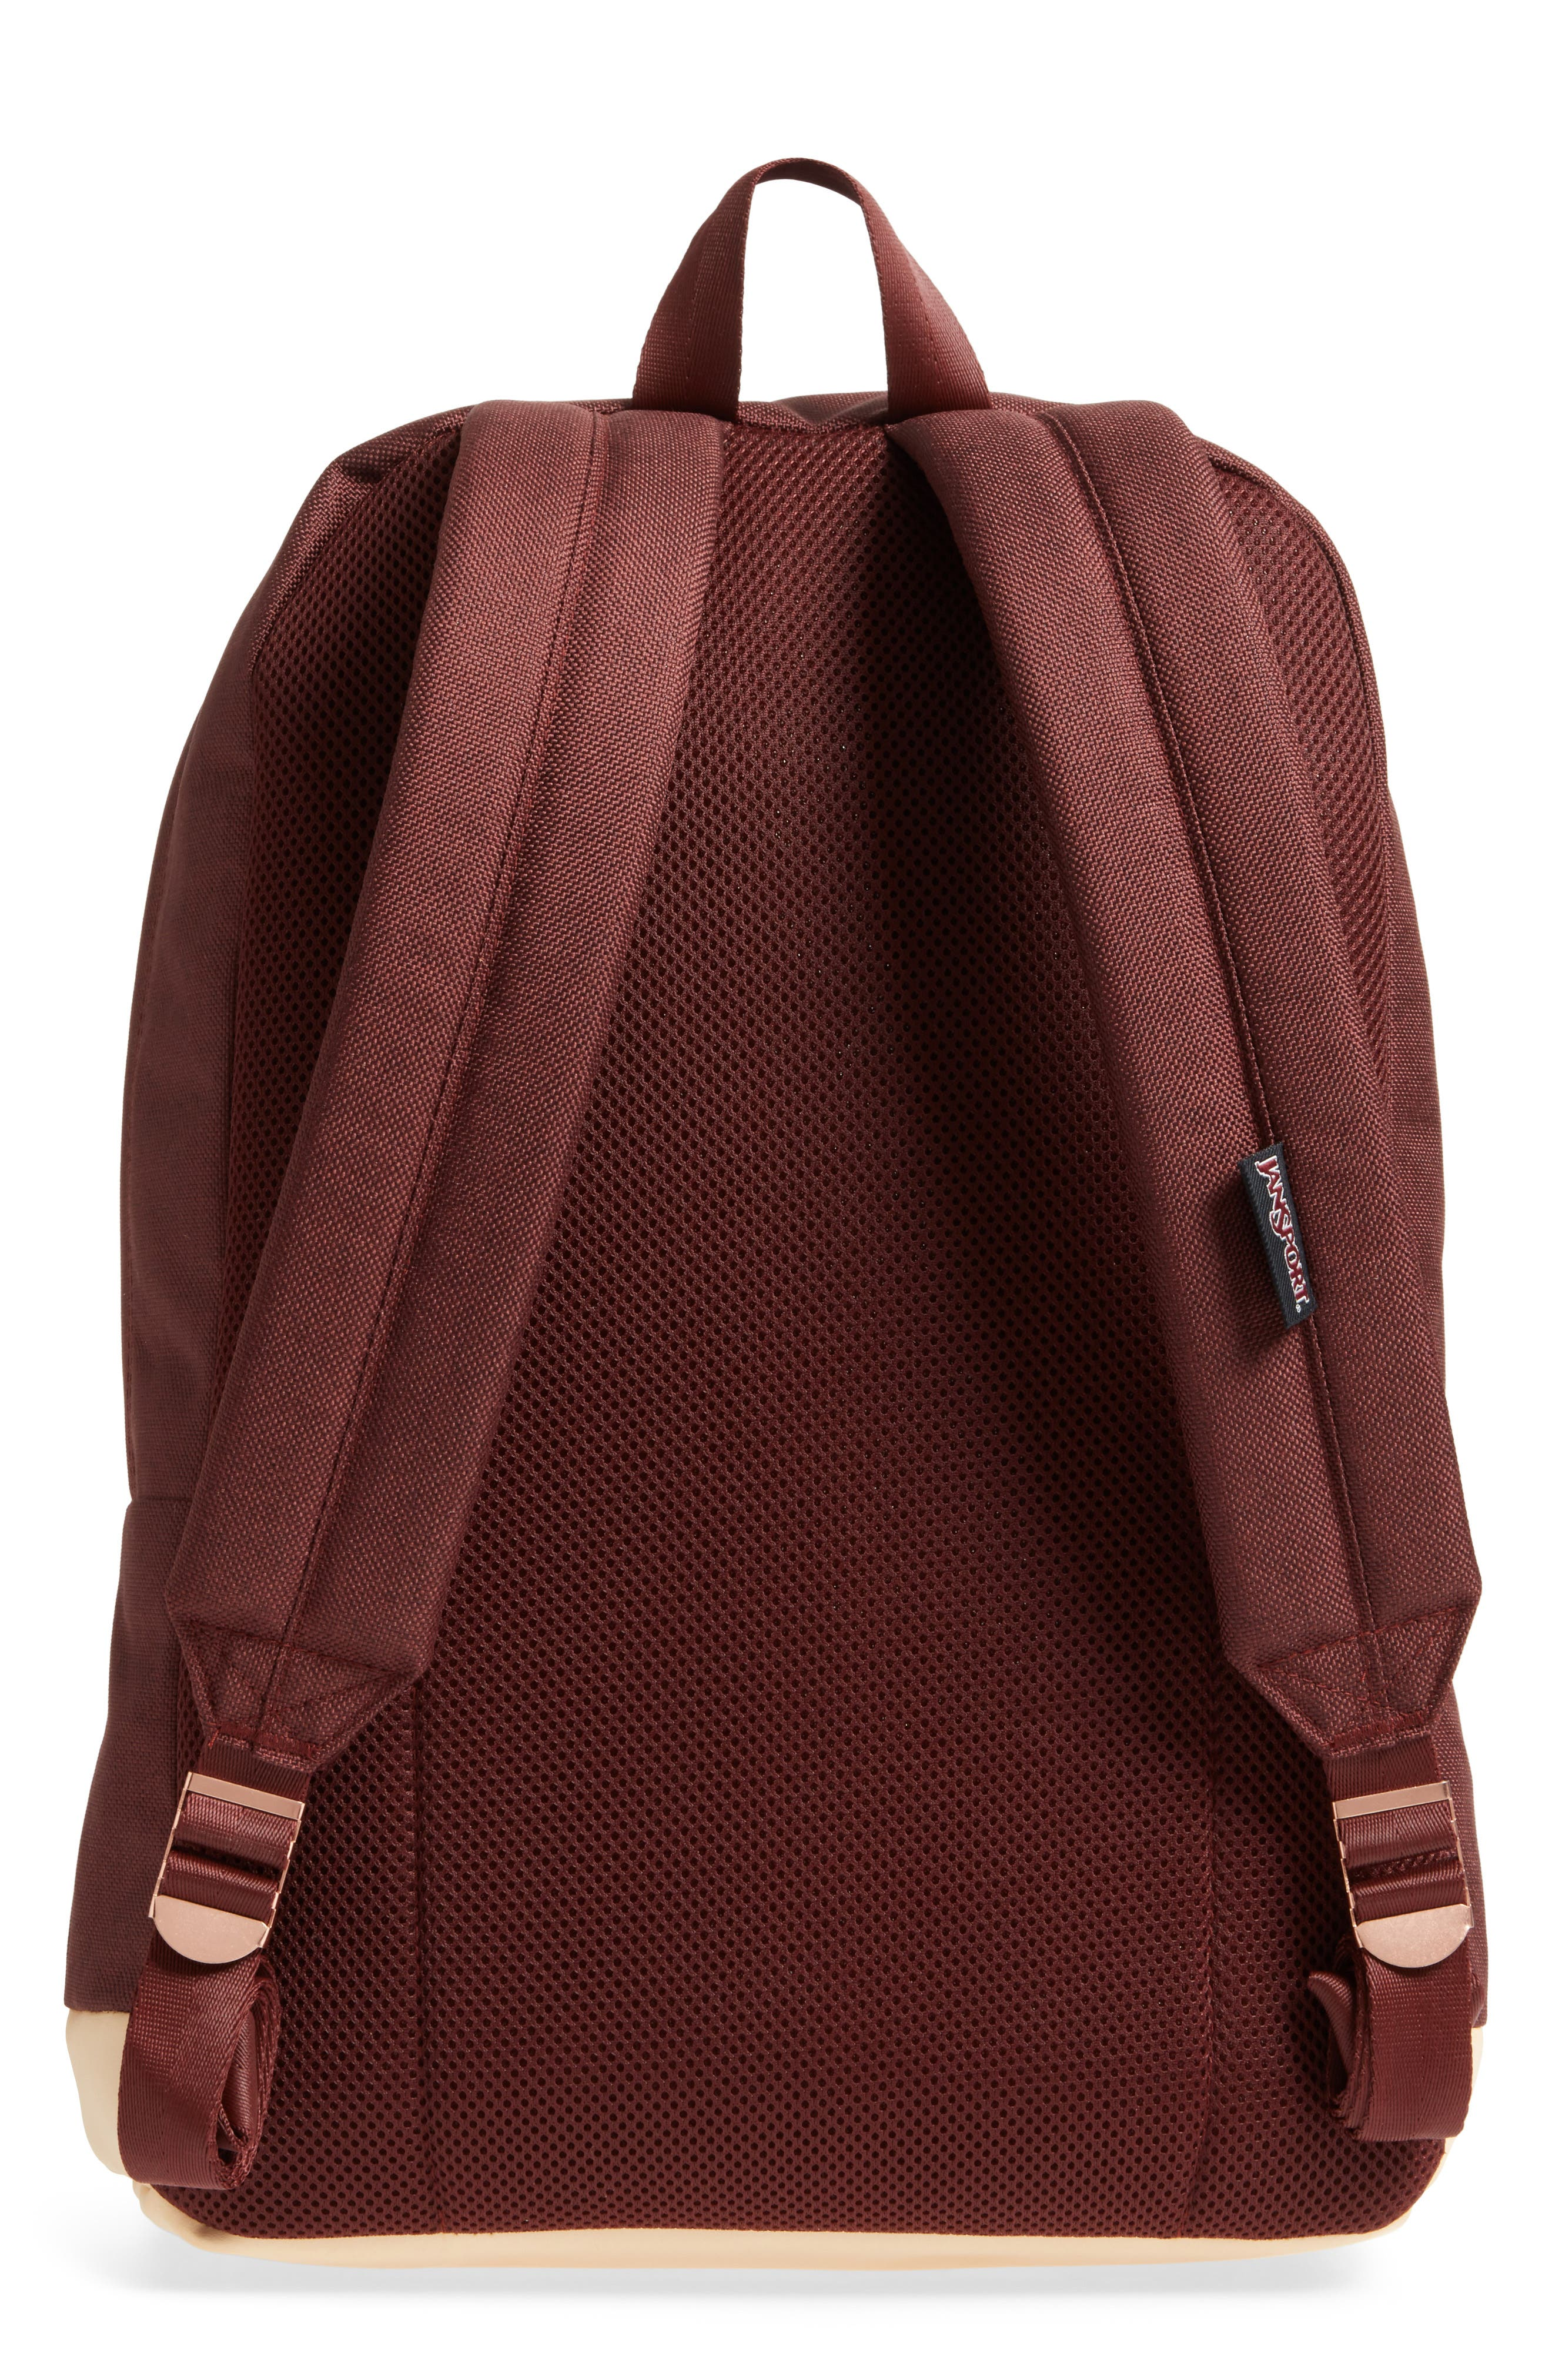 Red Rocks Axiom Backpack,                             Alternate thumbnail 3, color,                             600